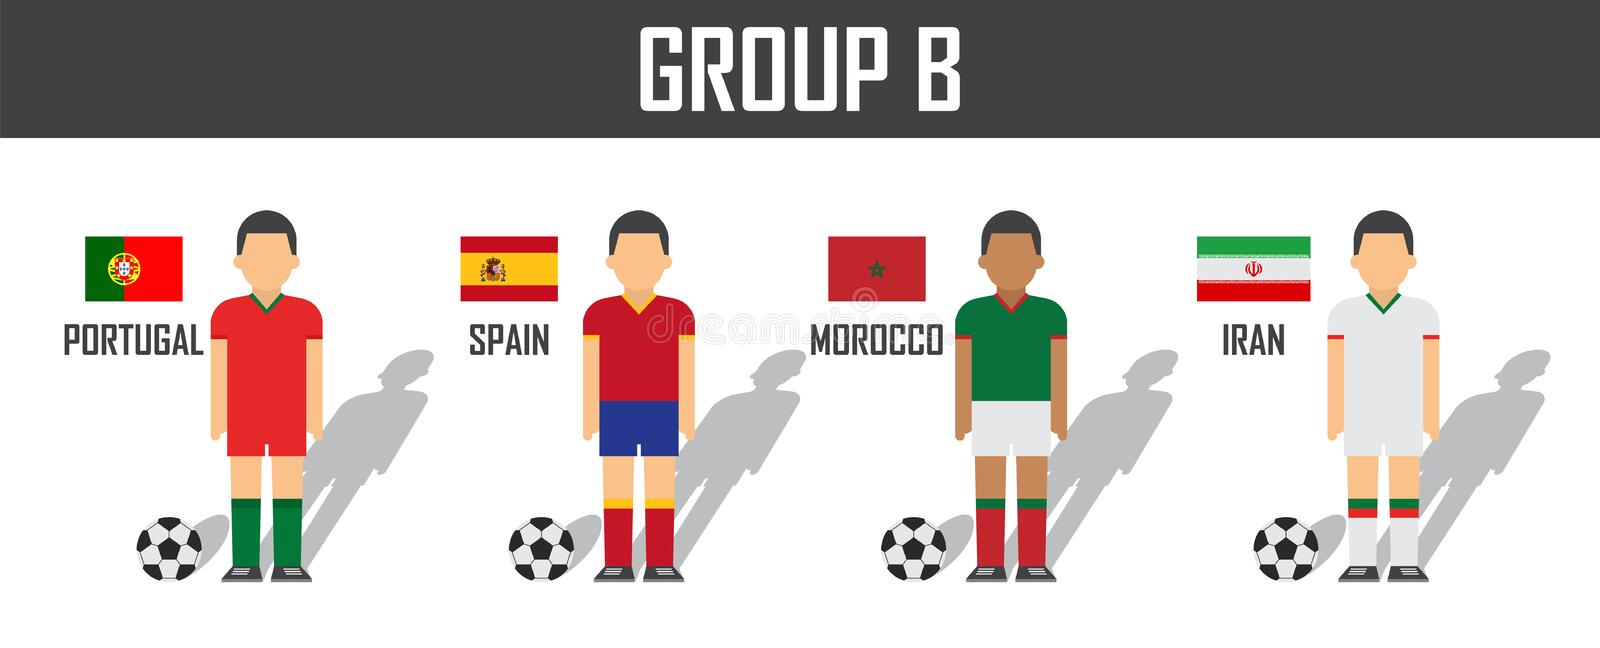 Soccer cup 2018 team group B . Football players with jersey uniform and national flags . Vector for international world championsh royalty free illustration